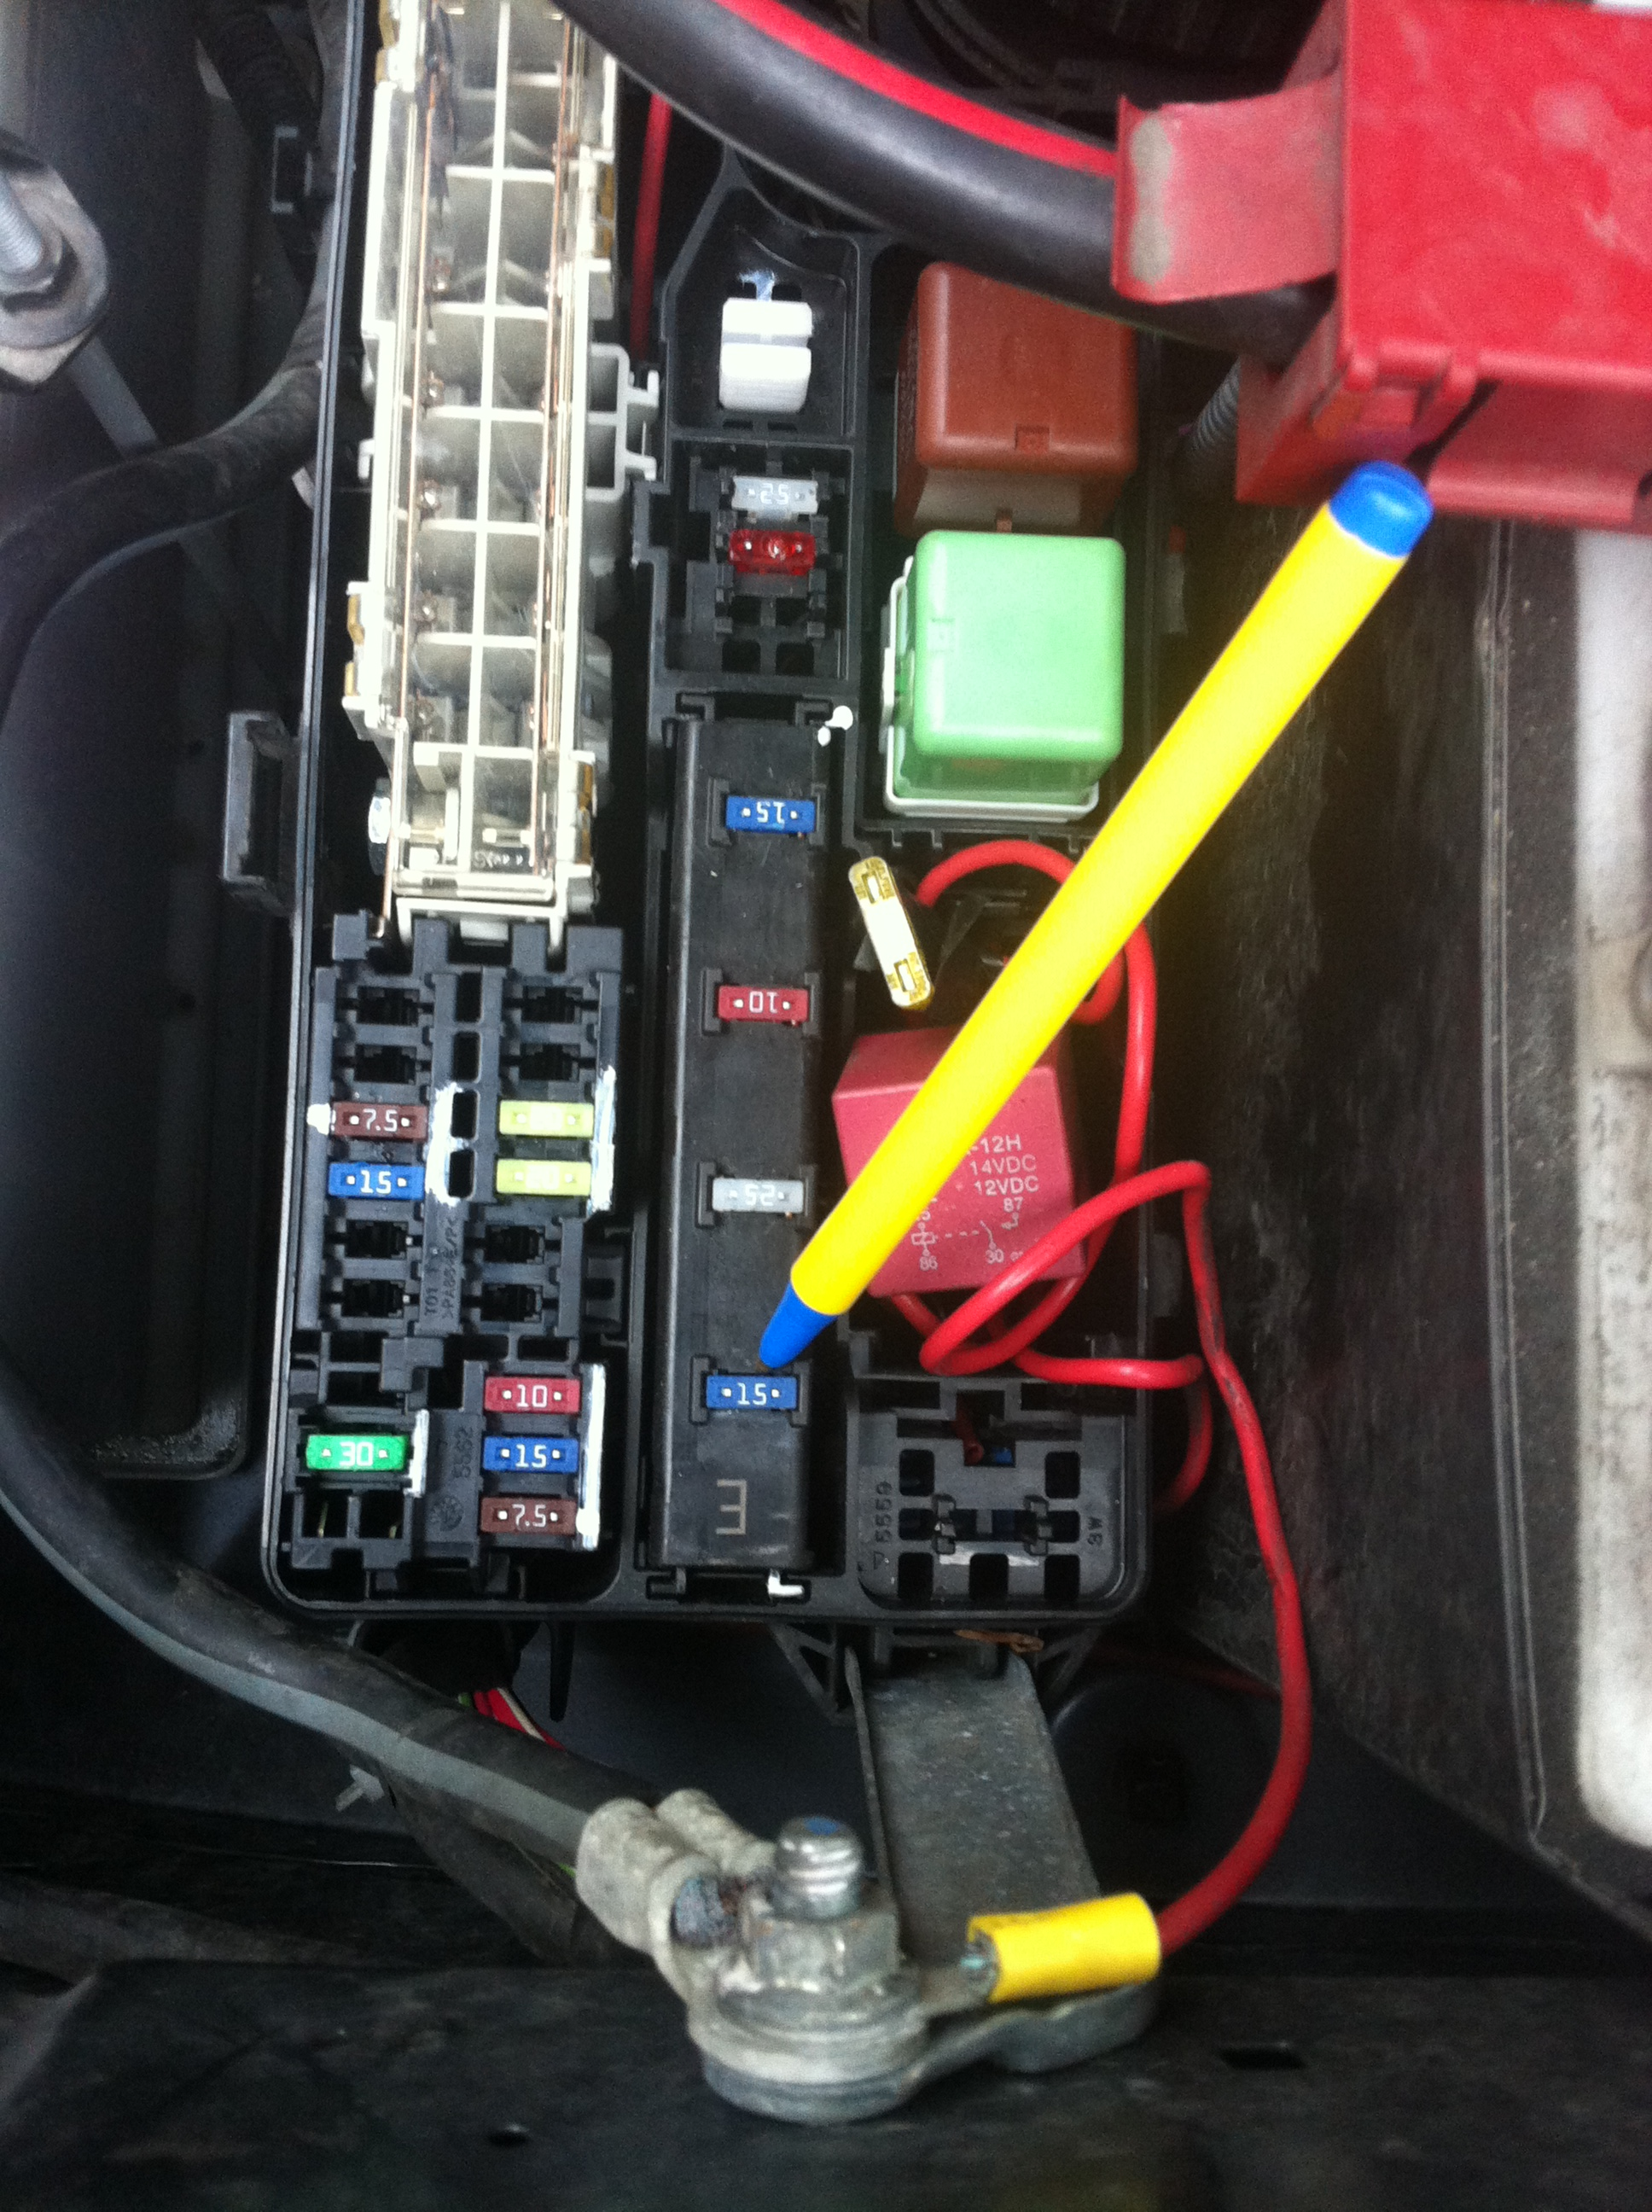 Master Fuse Box Wiring Library On A Renault I Have 2010 Hilux Invincible With 2 Battery System Lost Graphic Genuine New Ii